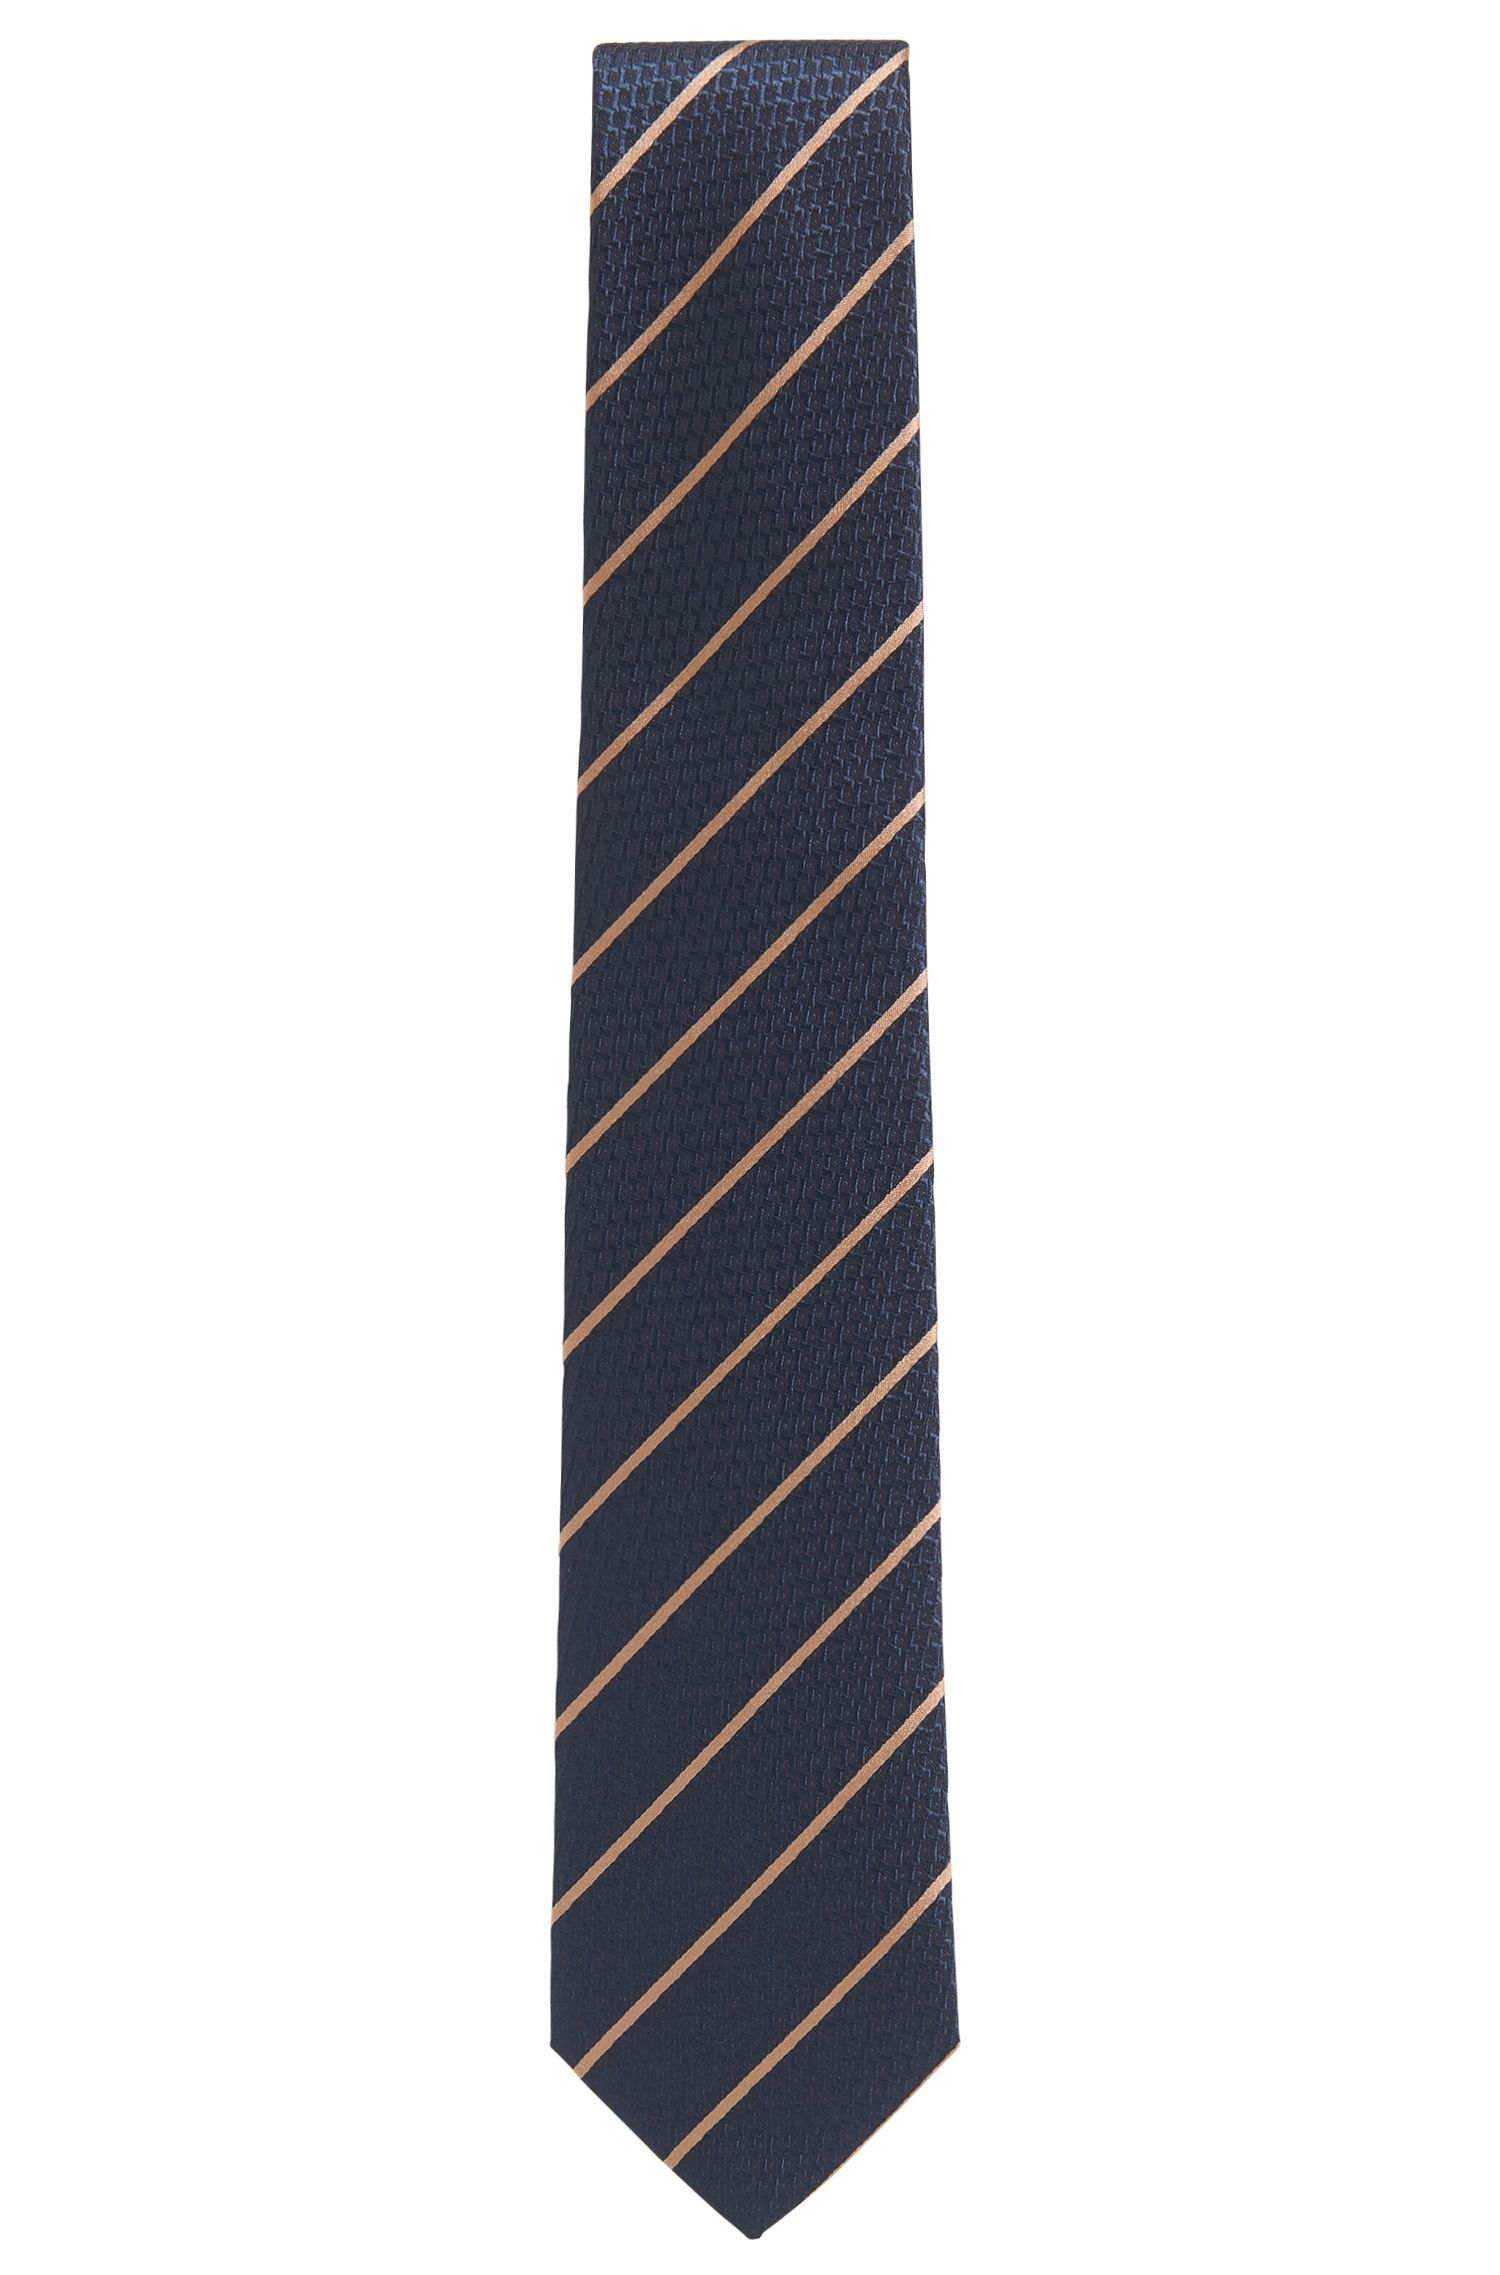 Diagonal striped tie in a textured silk jacquard